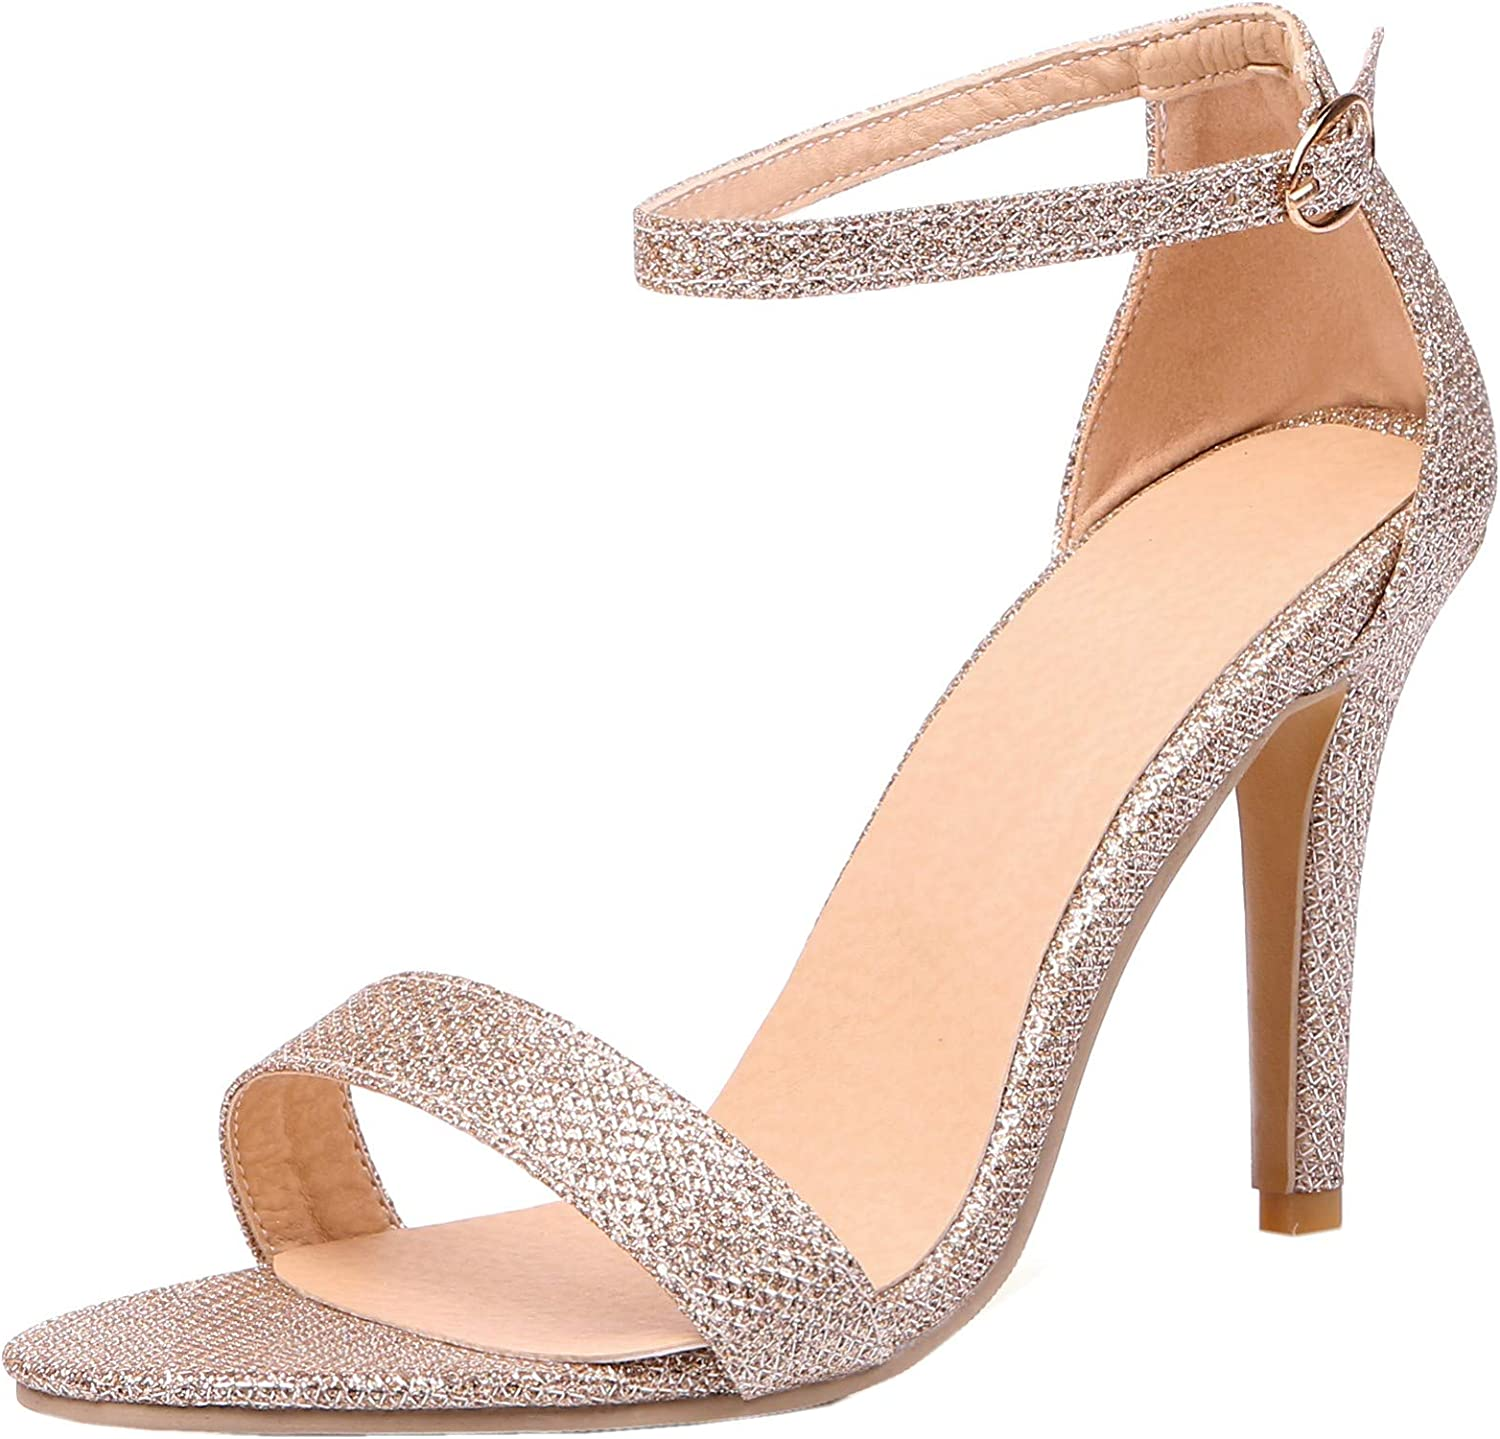 Rongzhi Womens Ankle Strap Buckle Heeled Sandals Pumps Stilettos Dress Party Wedding High Heels shoes gold